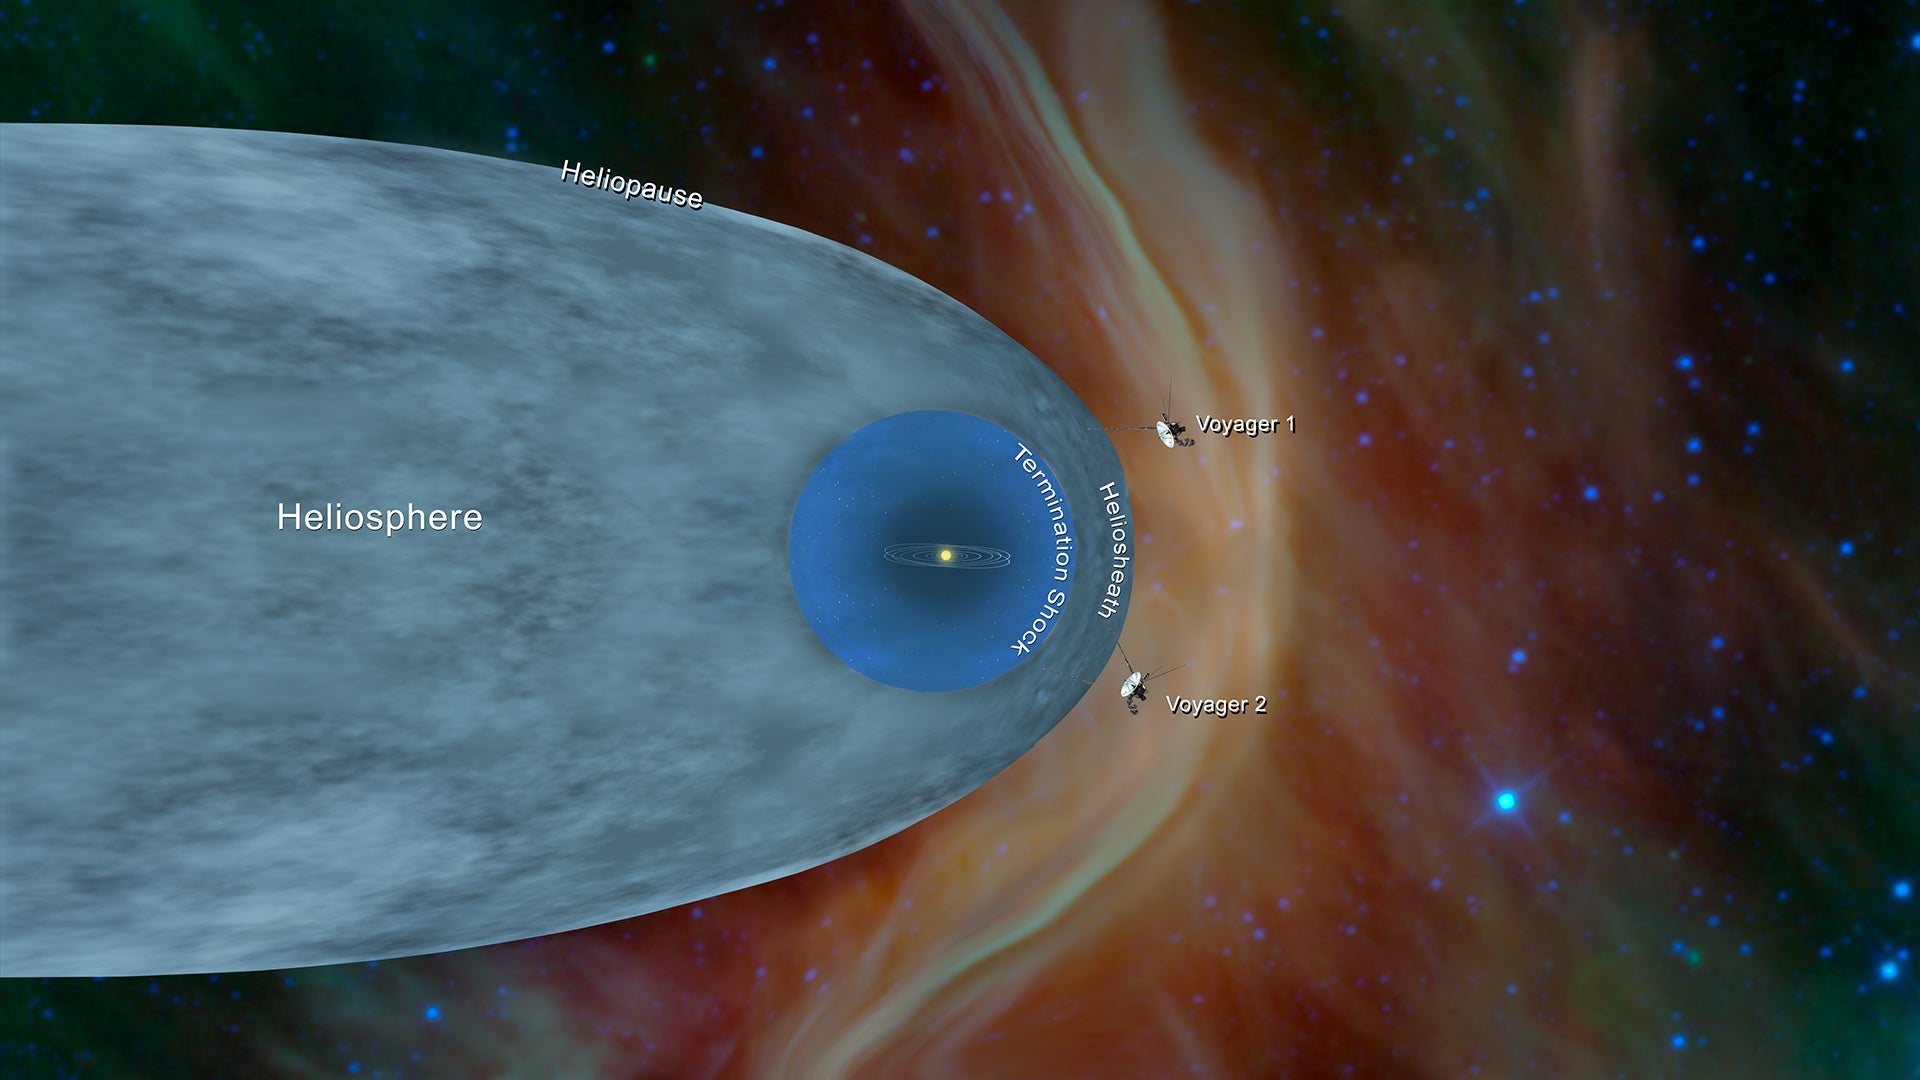 astronomy feature interstellar-space nasa physics voyager-1 voyager-2